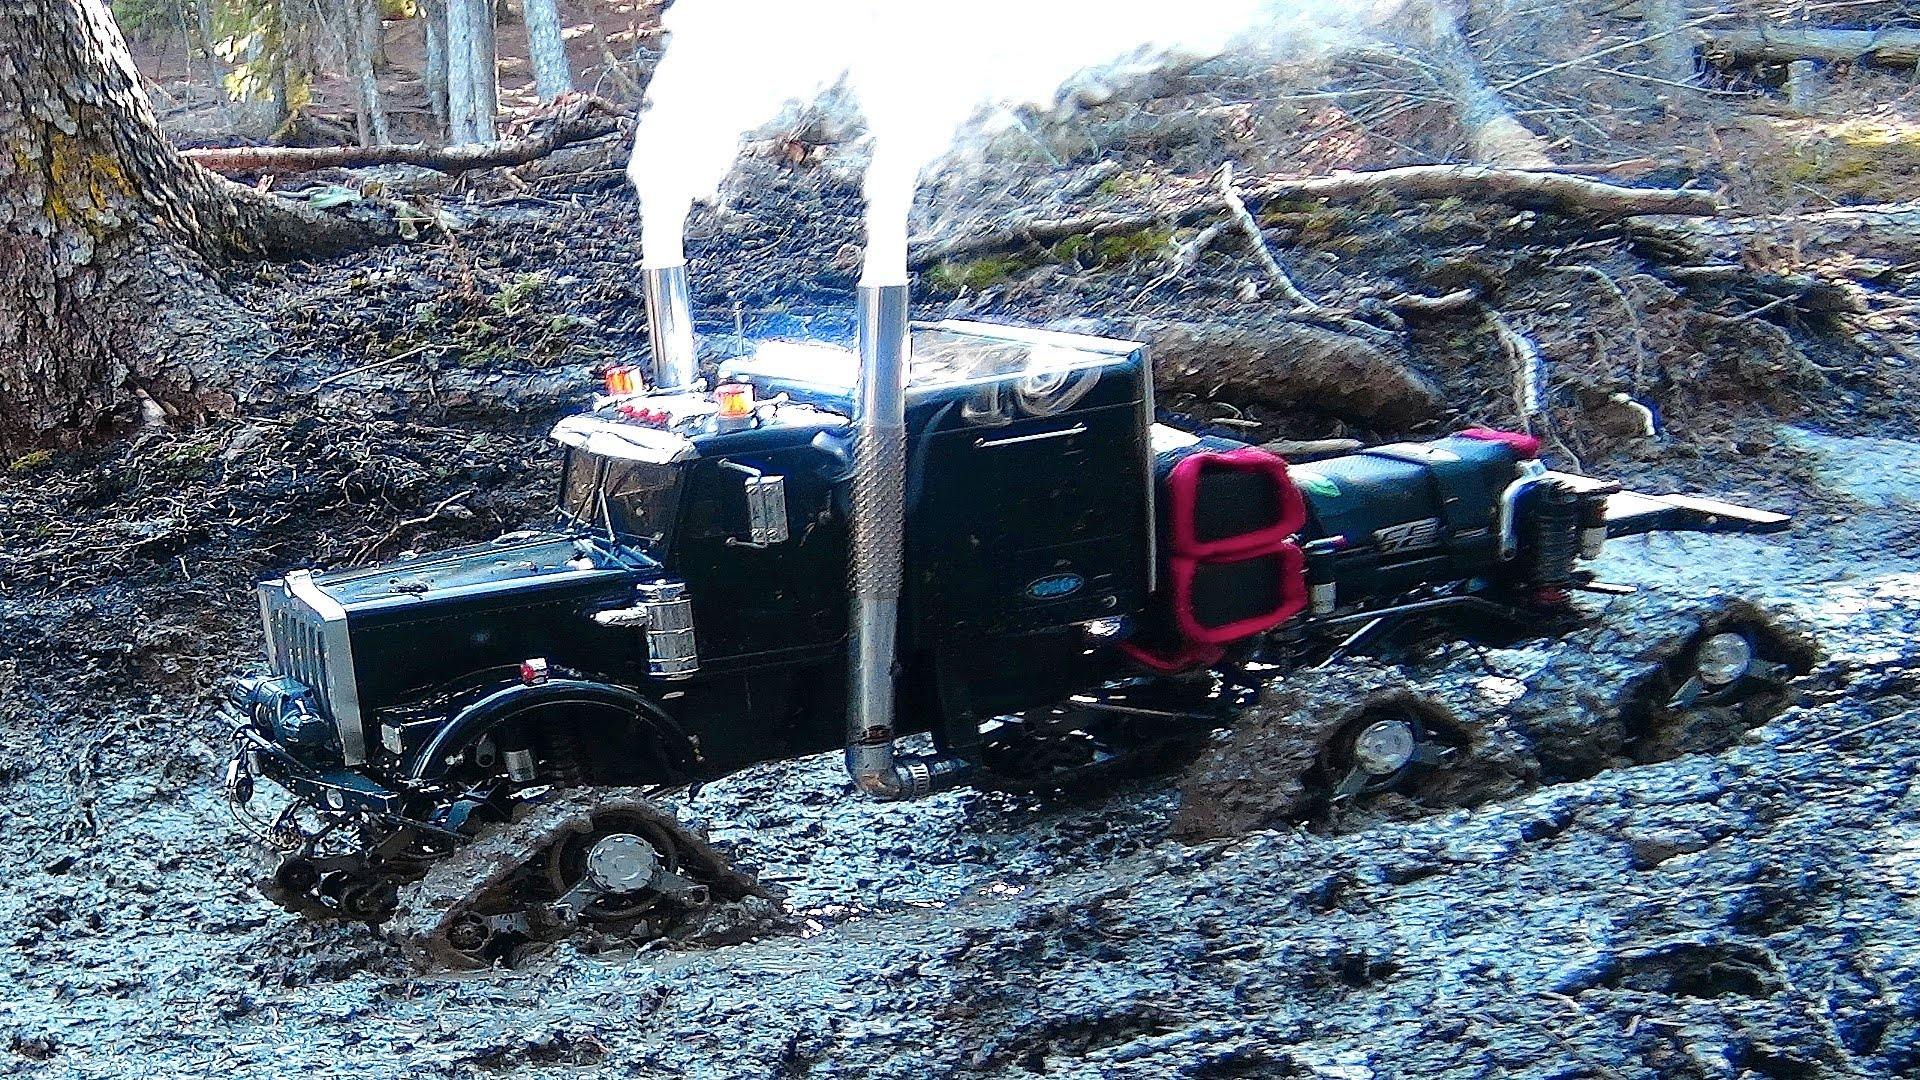 Mud Bog Monster Truck Is A Rc 4x4 Semi Truck Off Road Beast That Is